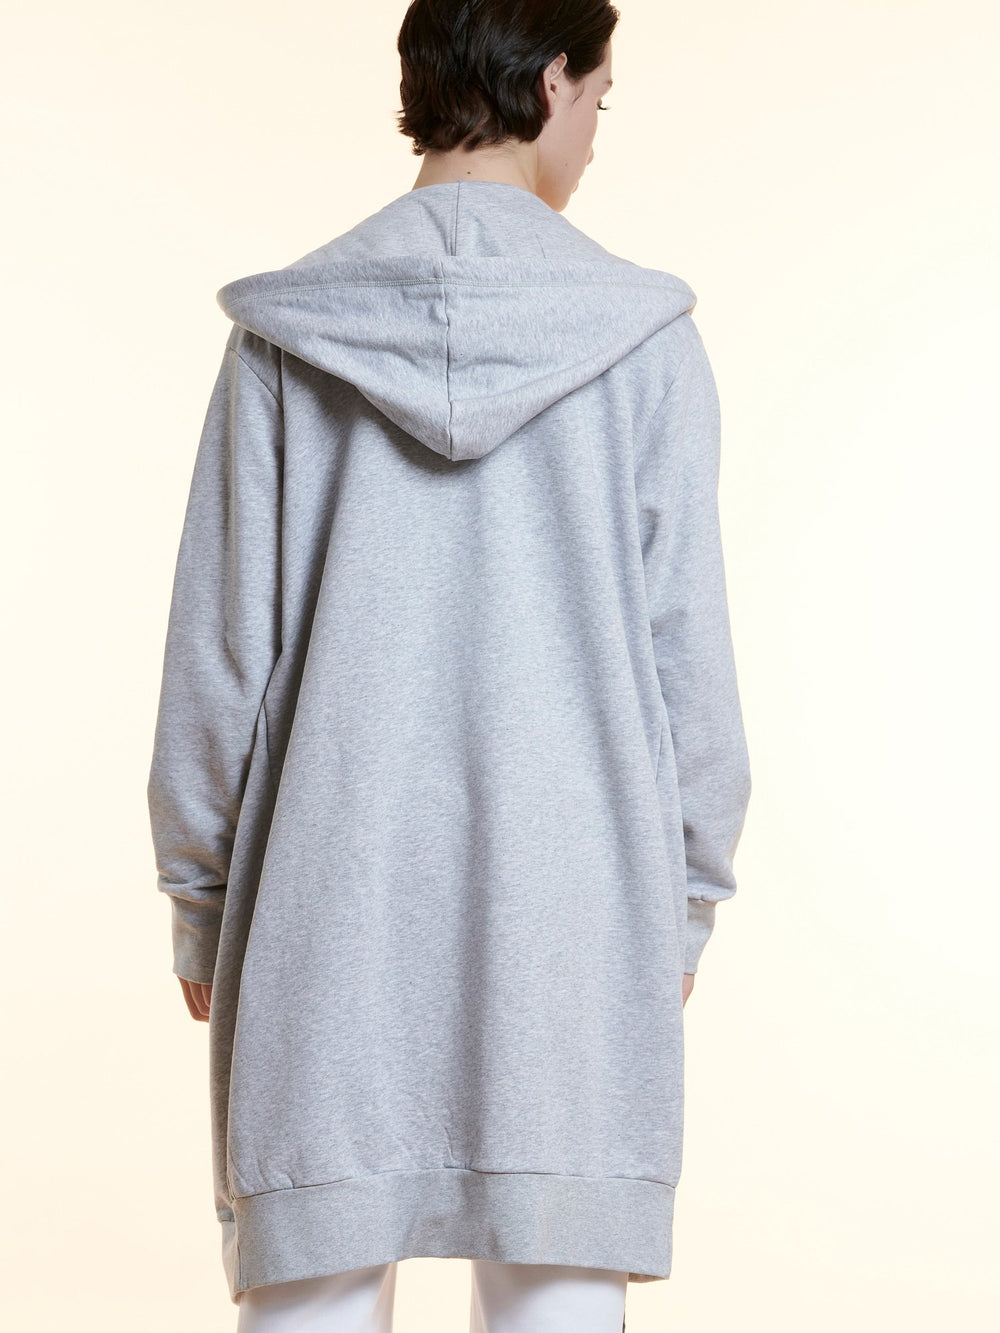 BAYA - Long College Hoodie - Grey BY0021-G-OS-F